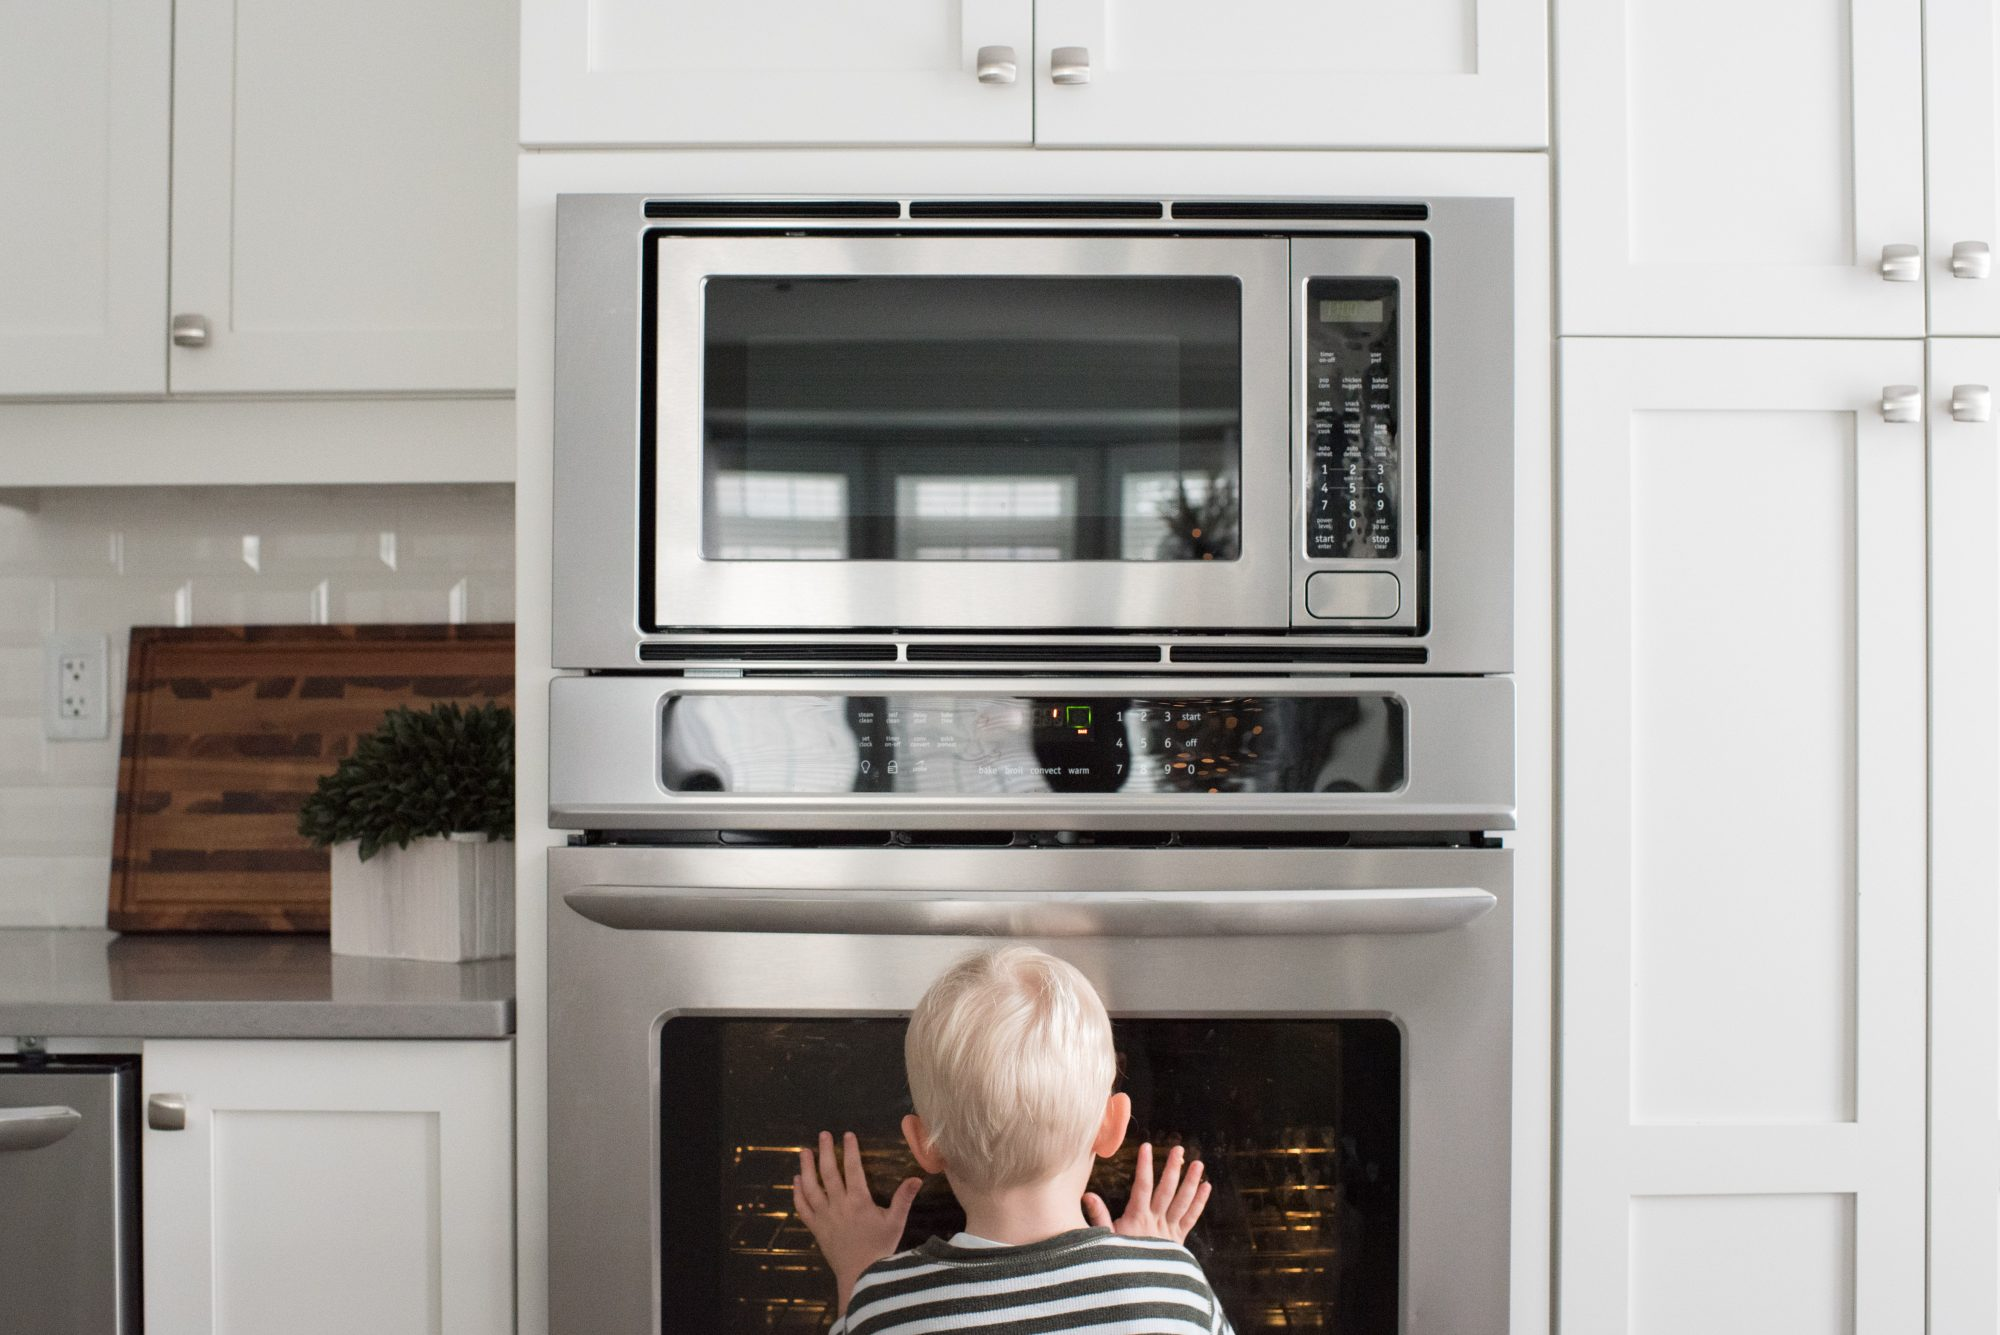 Boy in Front of Oven